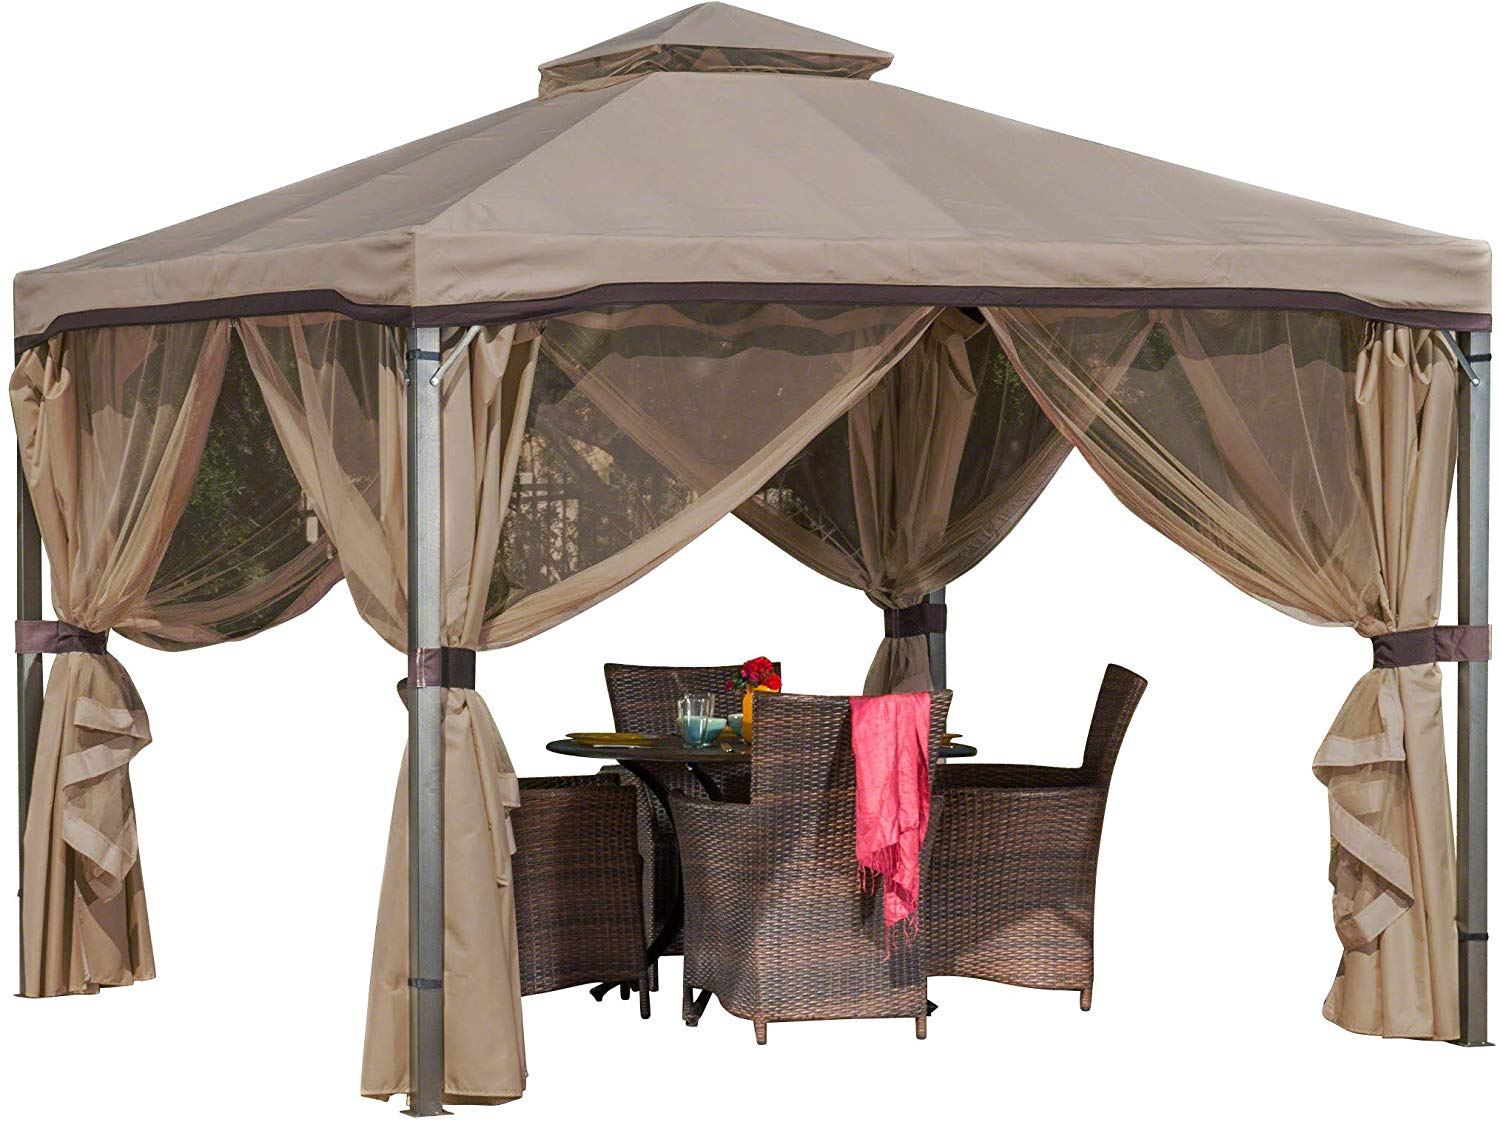 Christopher Knight Home Sonoma Canopy Gazebo, 10 x 10 feet Soft-Top Garden Tent with Mosquito Netting and Shade Curtains for Patio or Deck